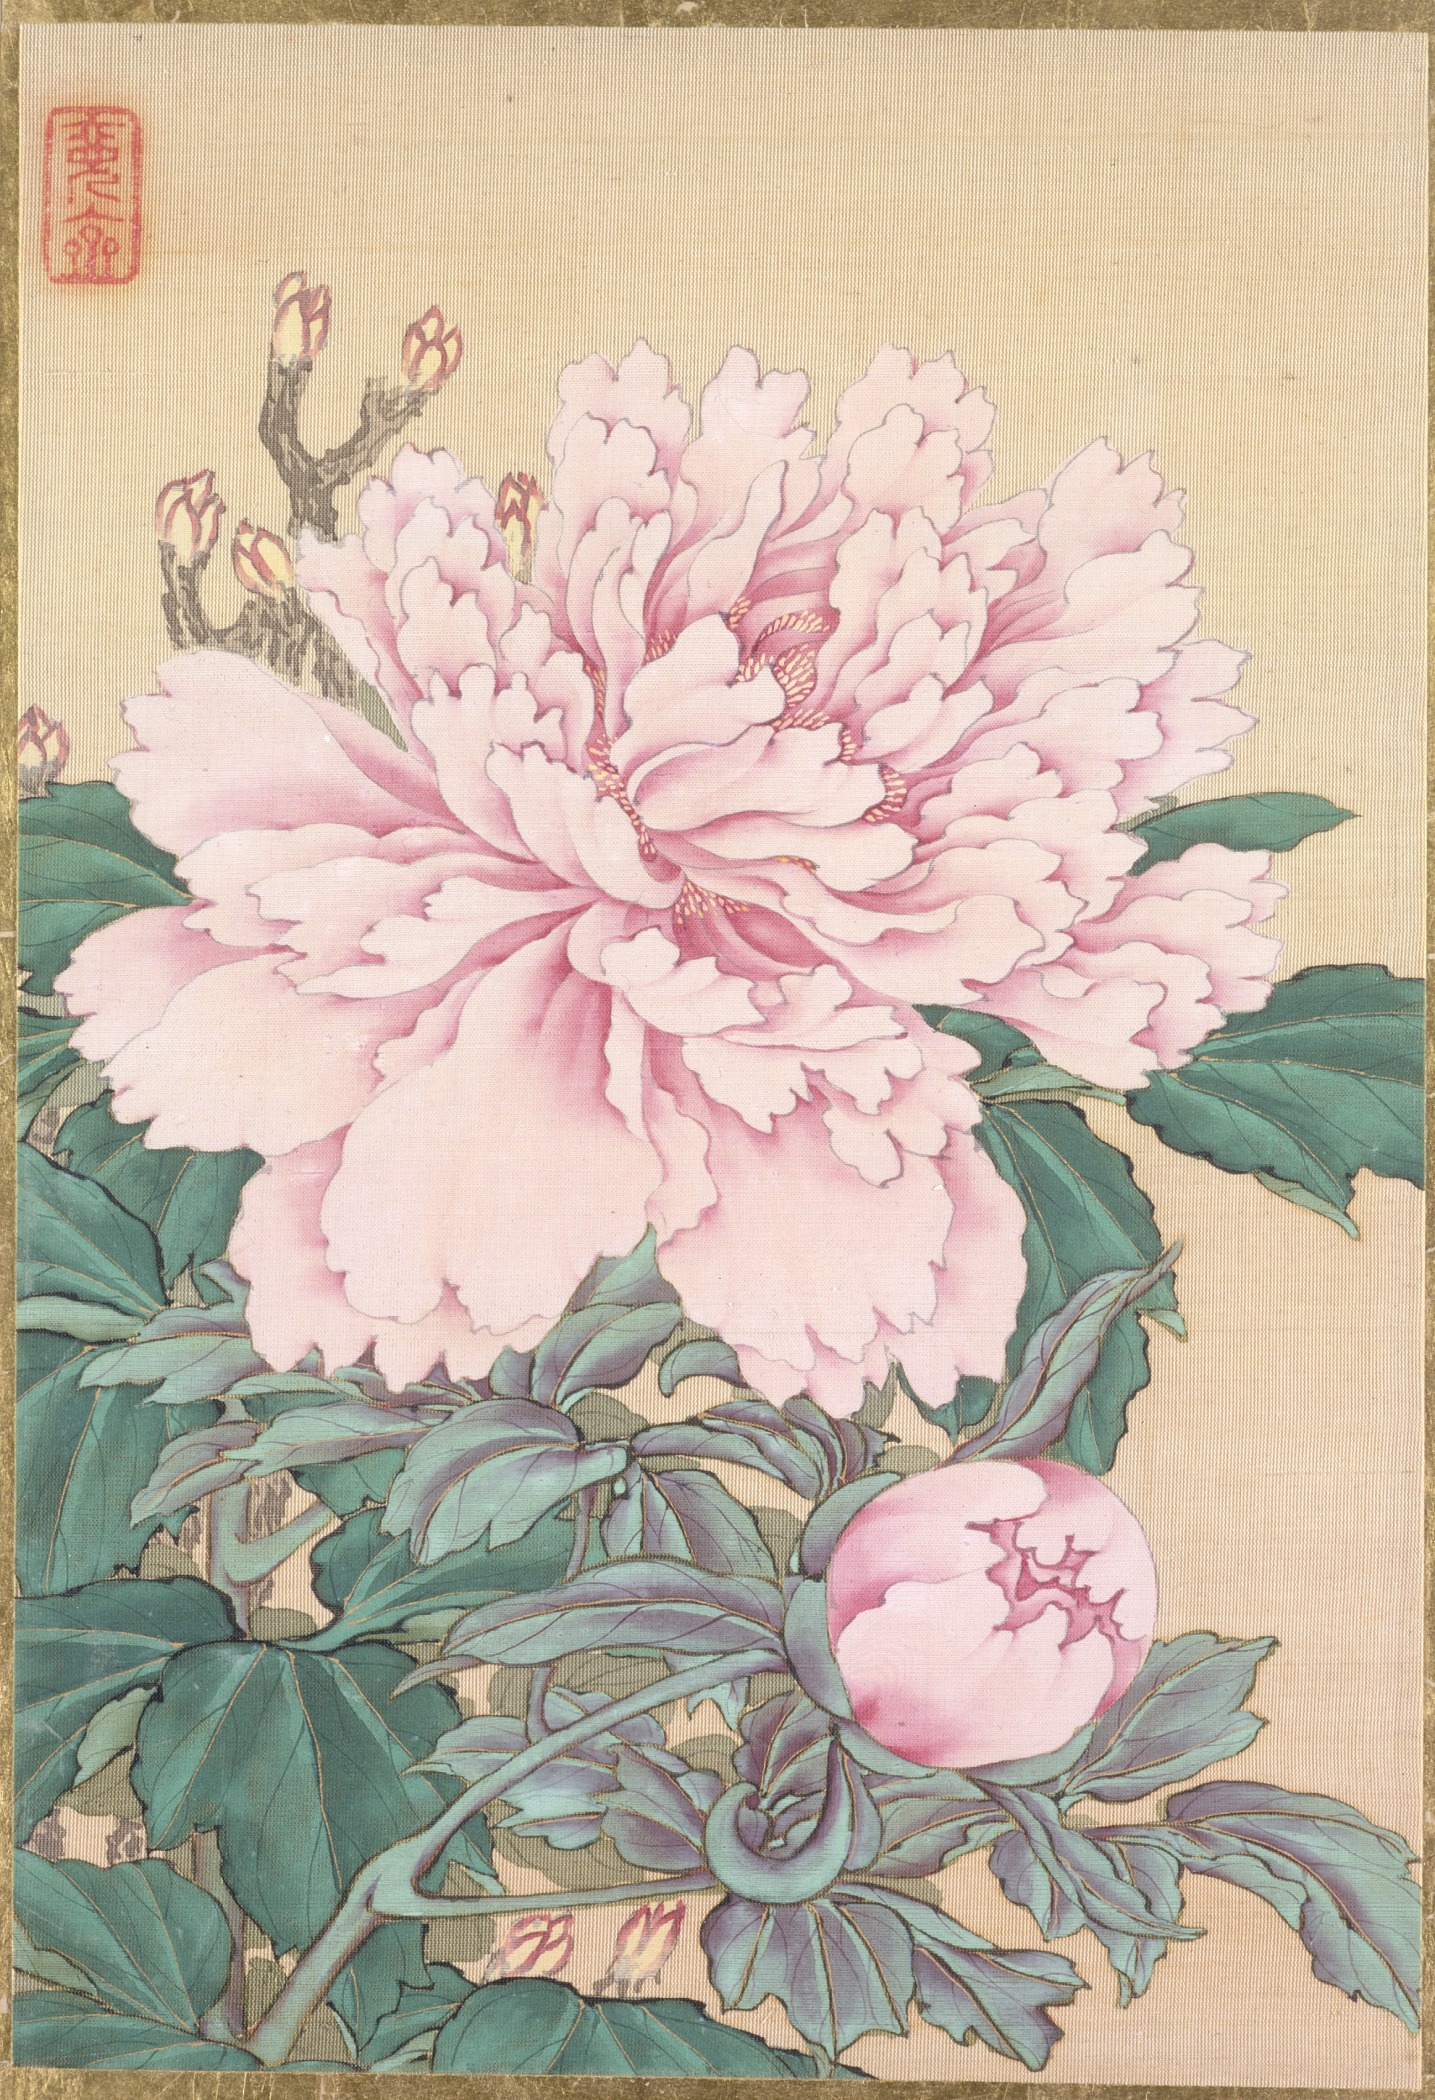 https://upload.wikimedia.org/wikipedia/commons/c/cf/Pictures_of_Flowers_and_Birds_LACMA_M.85.99_%2811_of_25%29.jpg